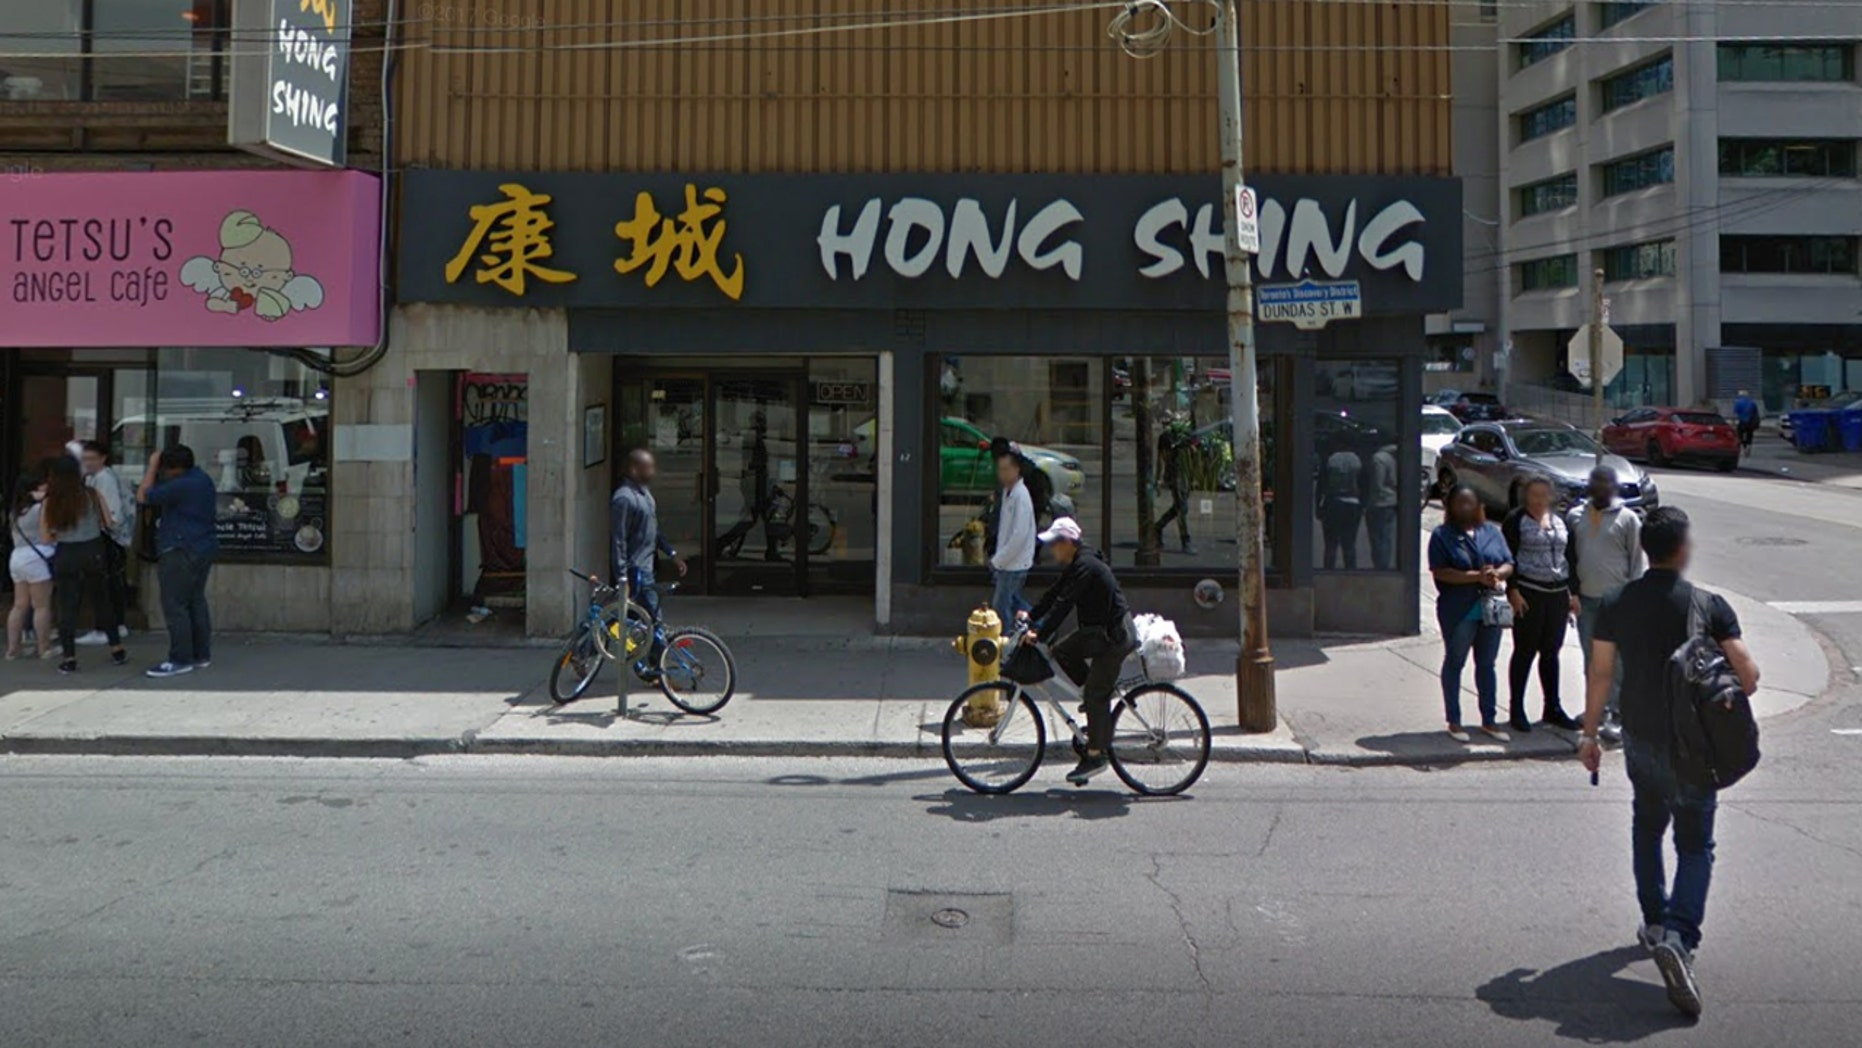 Hong Shing, a Chinese restaurant in Toronto, has been fined $10,000 for violating a human rights code after asking black patrons to prepay for their food.